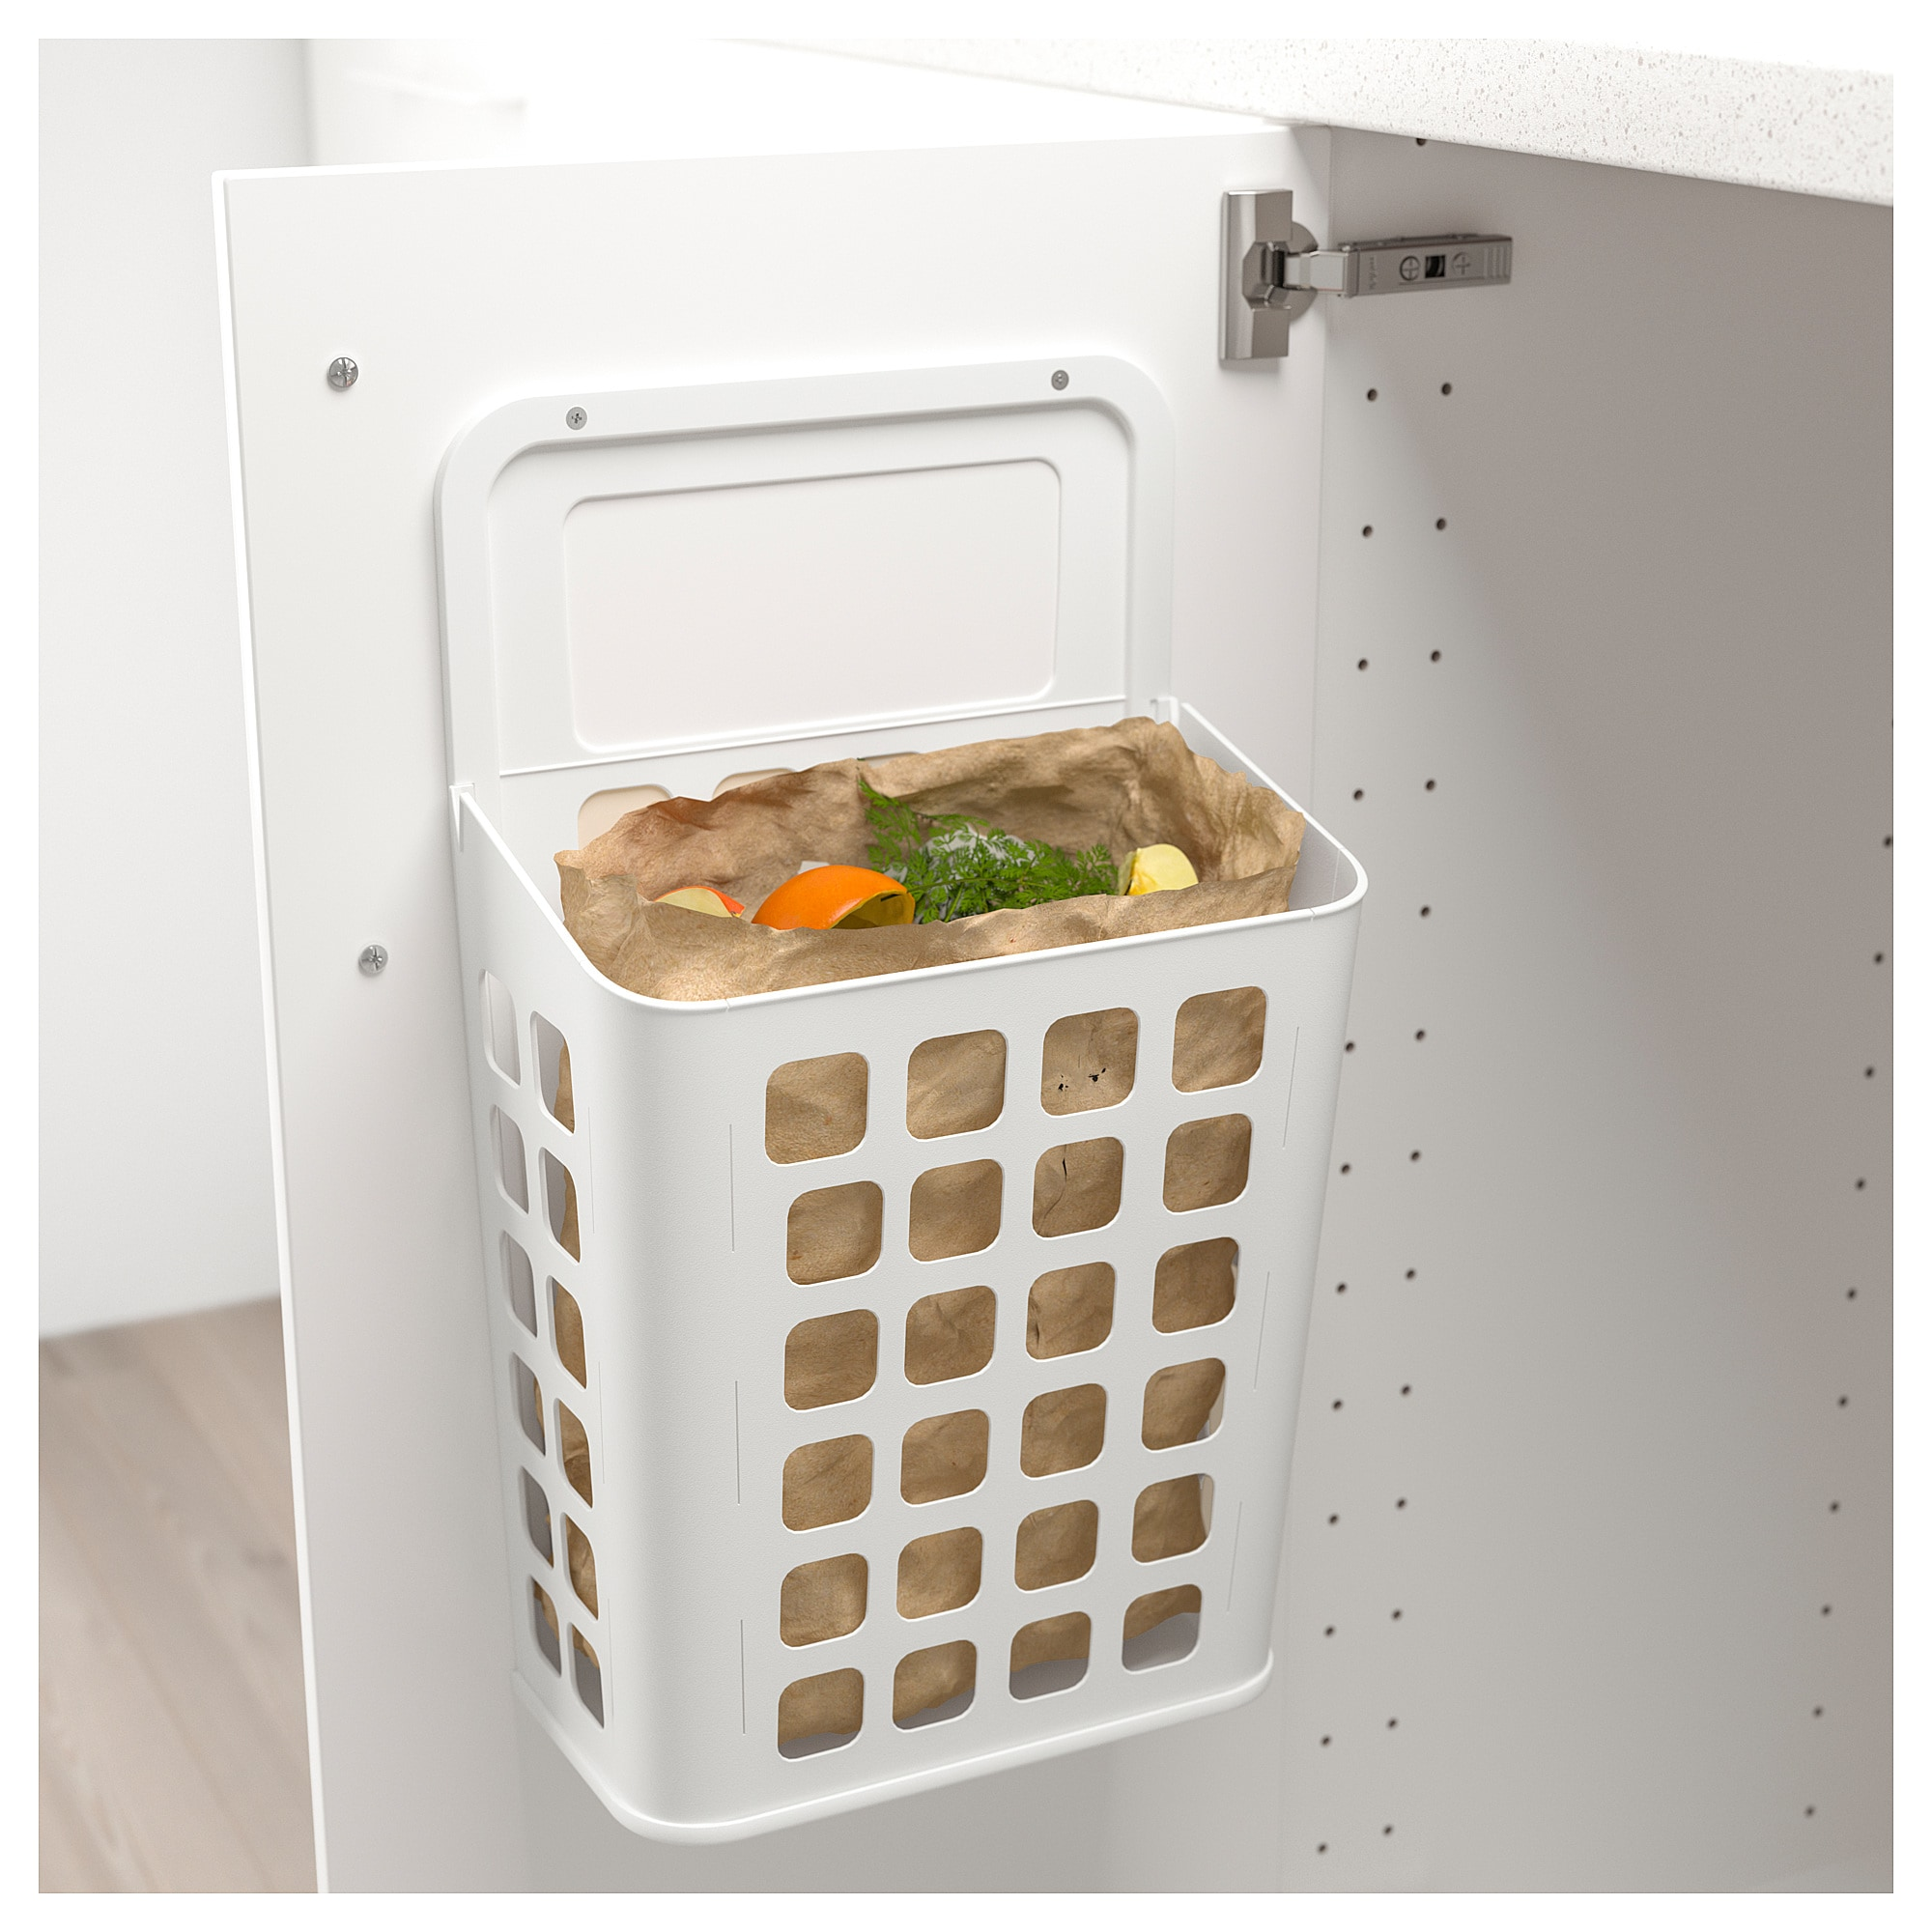 100 under sink trash can ikea best 25 ikea kitchen storage ideas on pinterest ikea kitchen - Ikea cabinet trash pull out ...